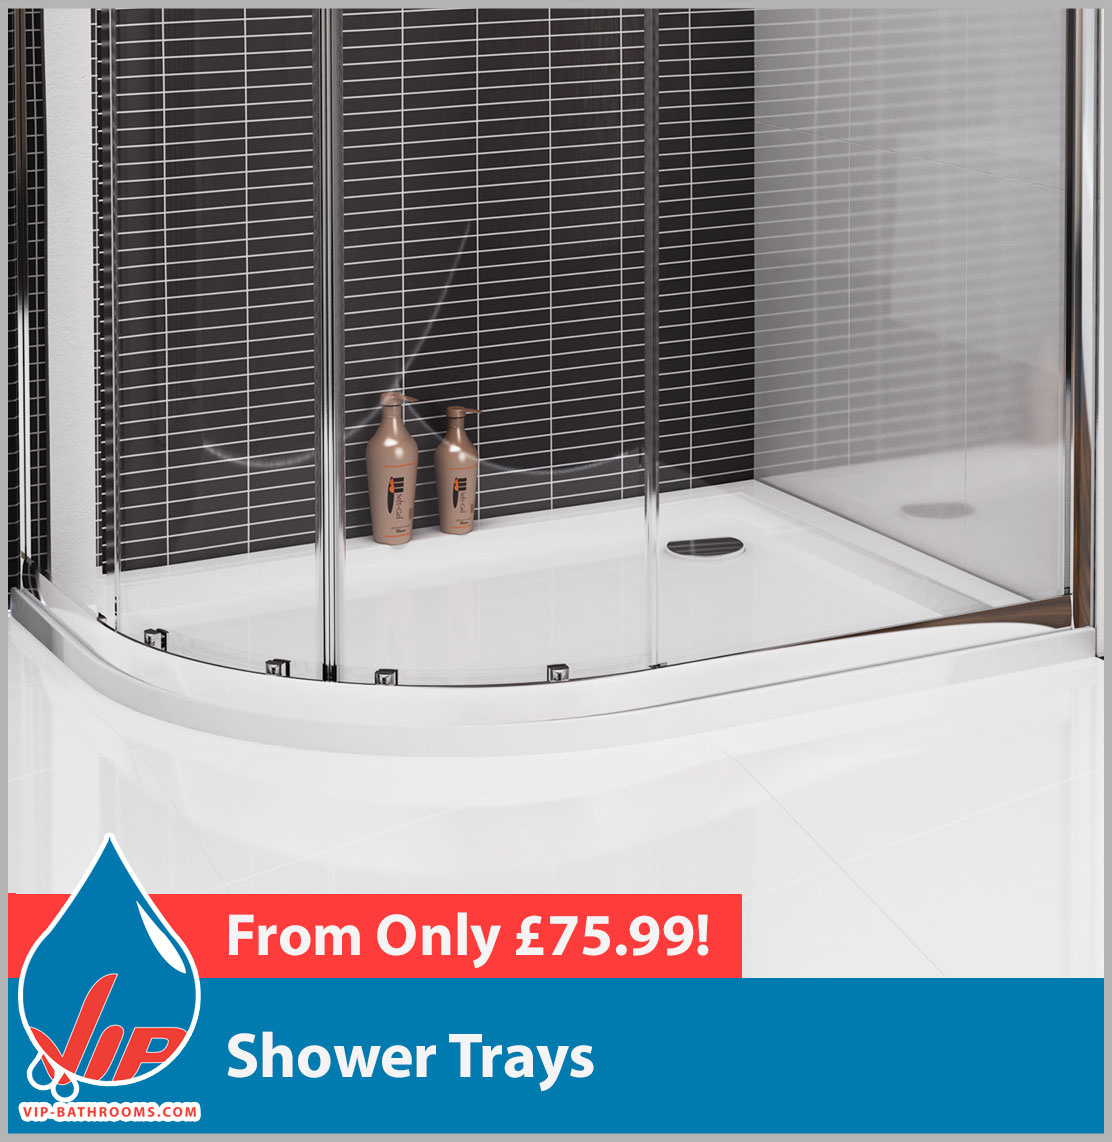 Click here to view our range of high quality Shower Trays